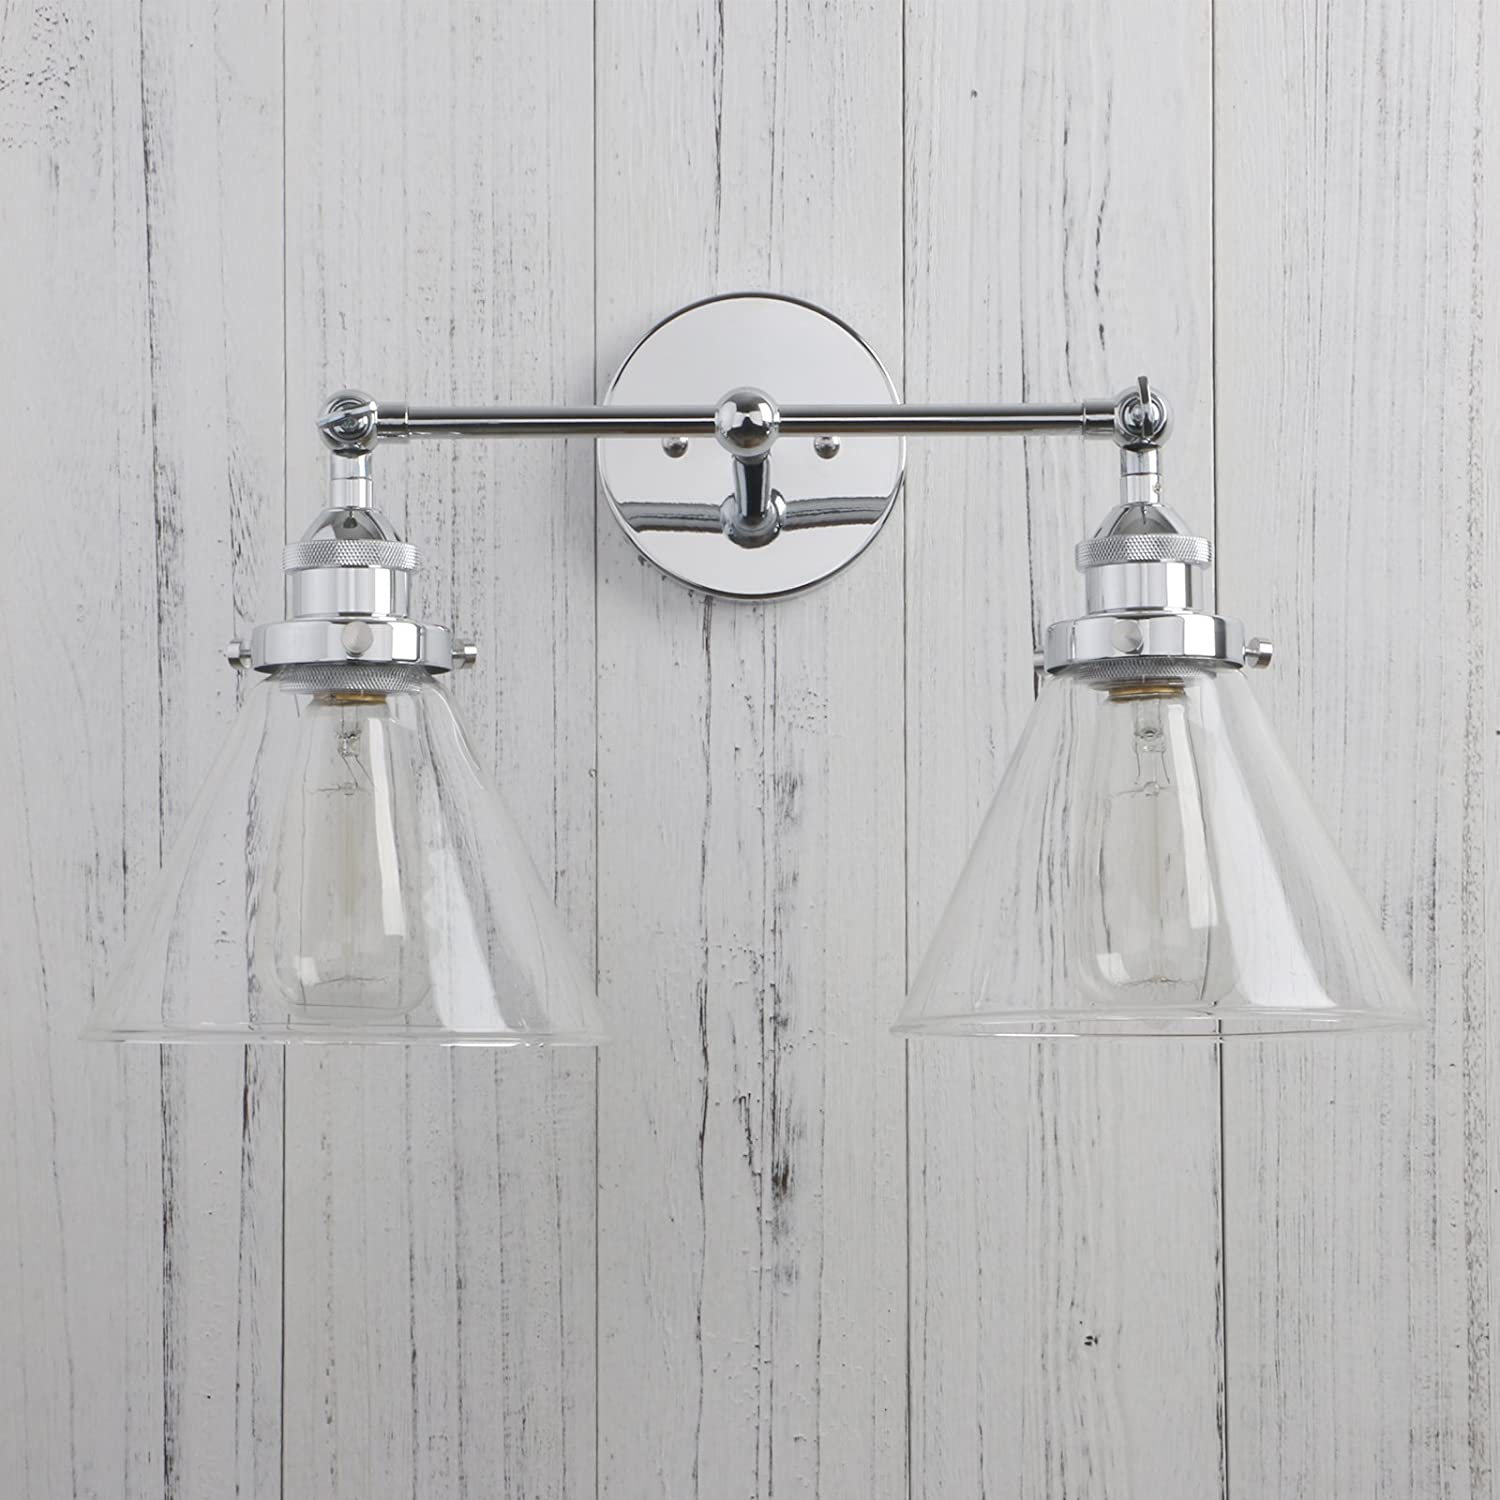 Permo Vintage Industrial Antique 2-Lights Wall Sconces with Dual Funnel Clear Glass Shade Black